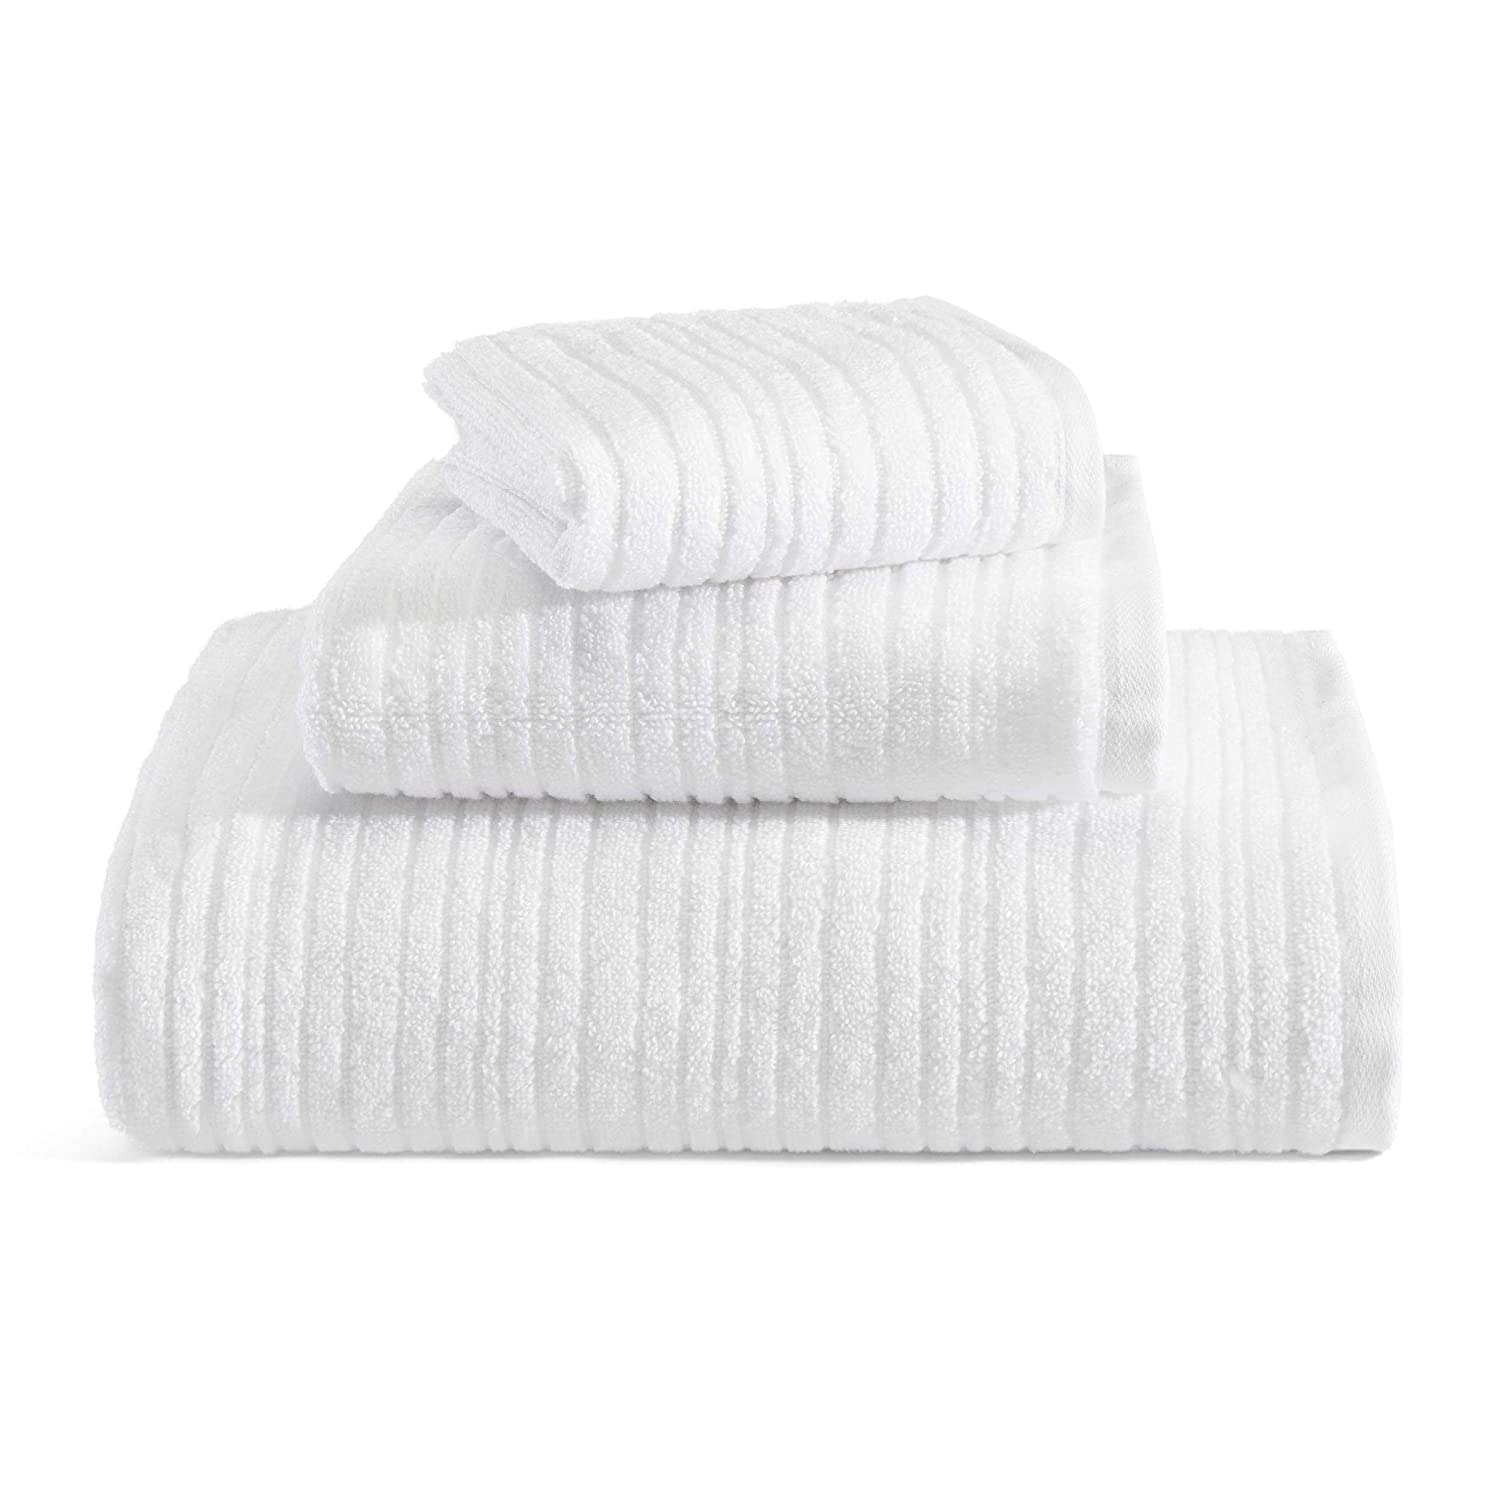 Kenneth Cole REACTION Quick Dry Towel Set, 3 Piece, White